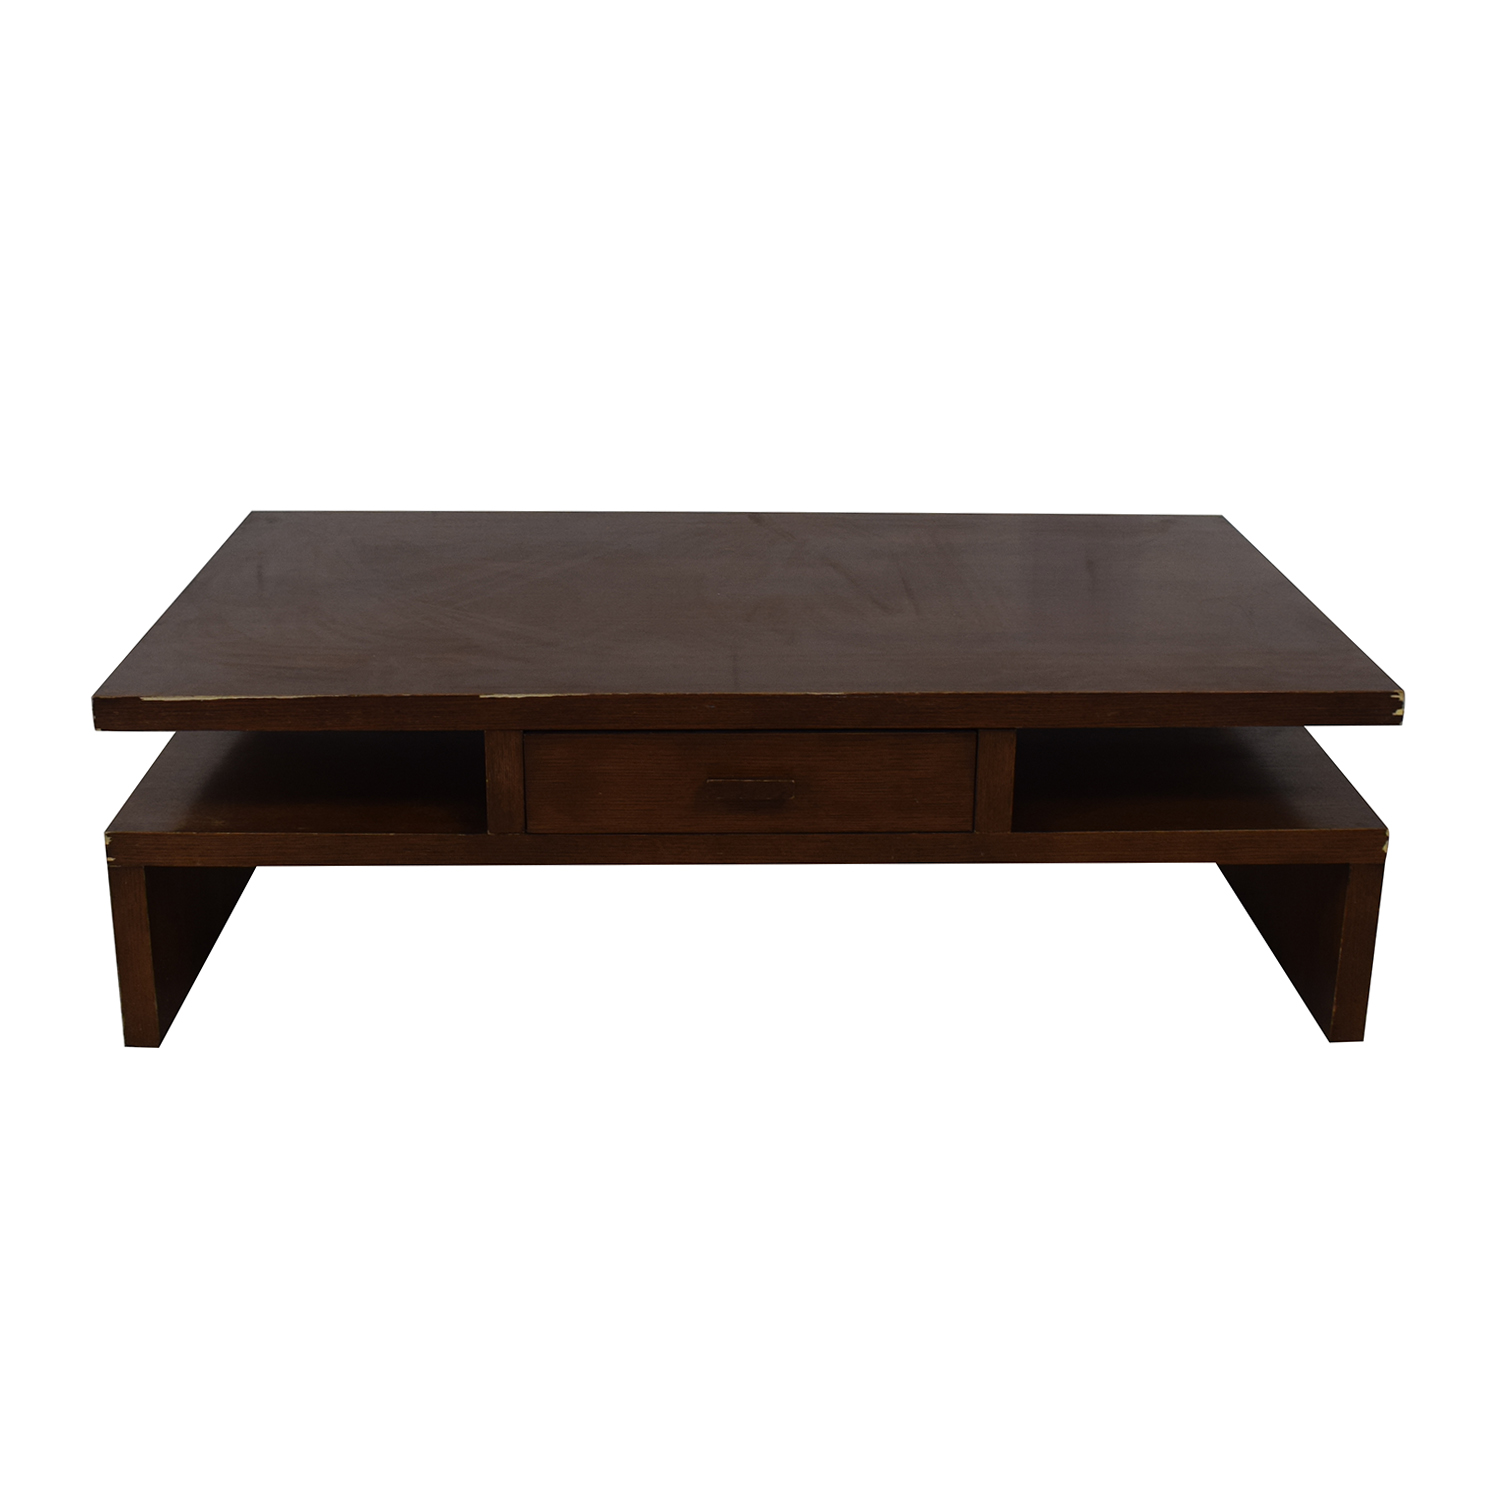 Baker Furniture Barbara Barry Coffee Table sale